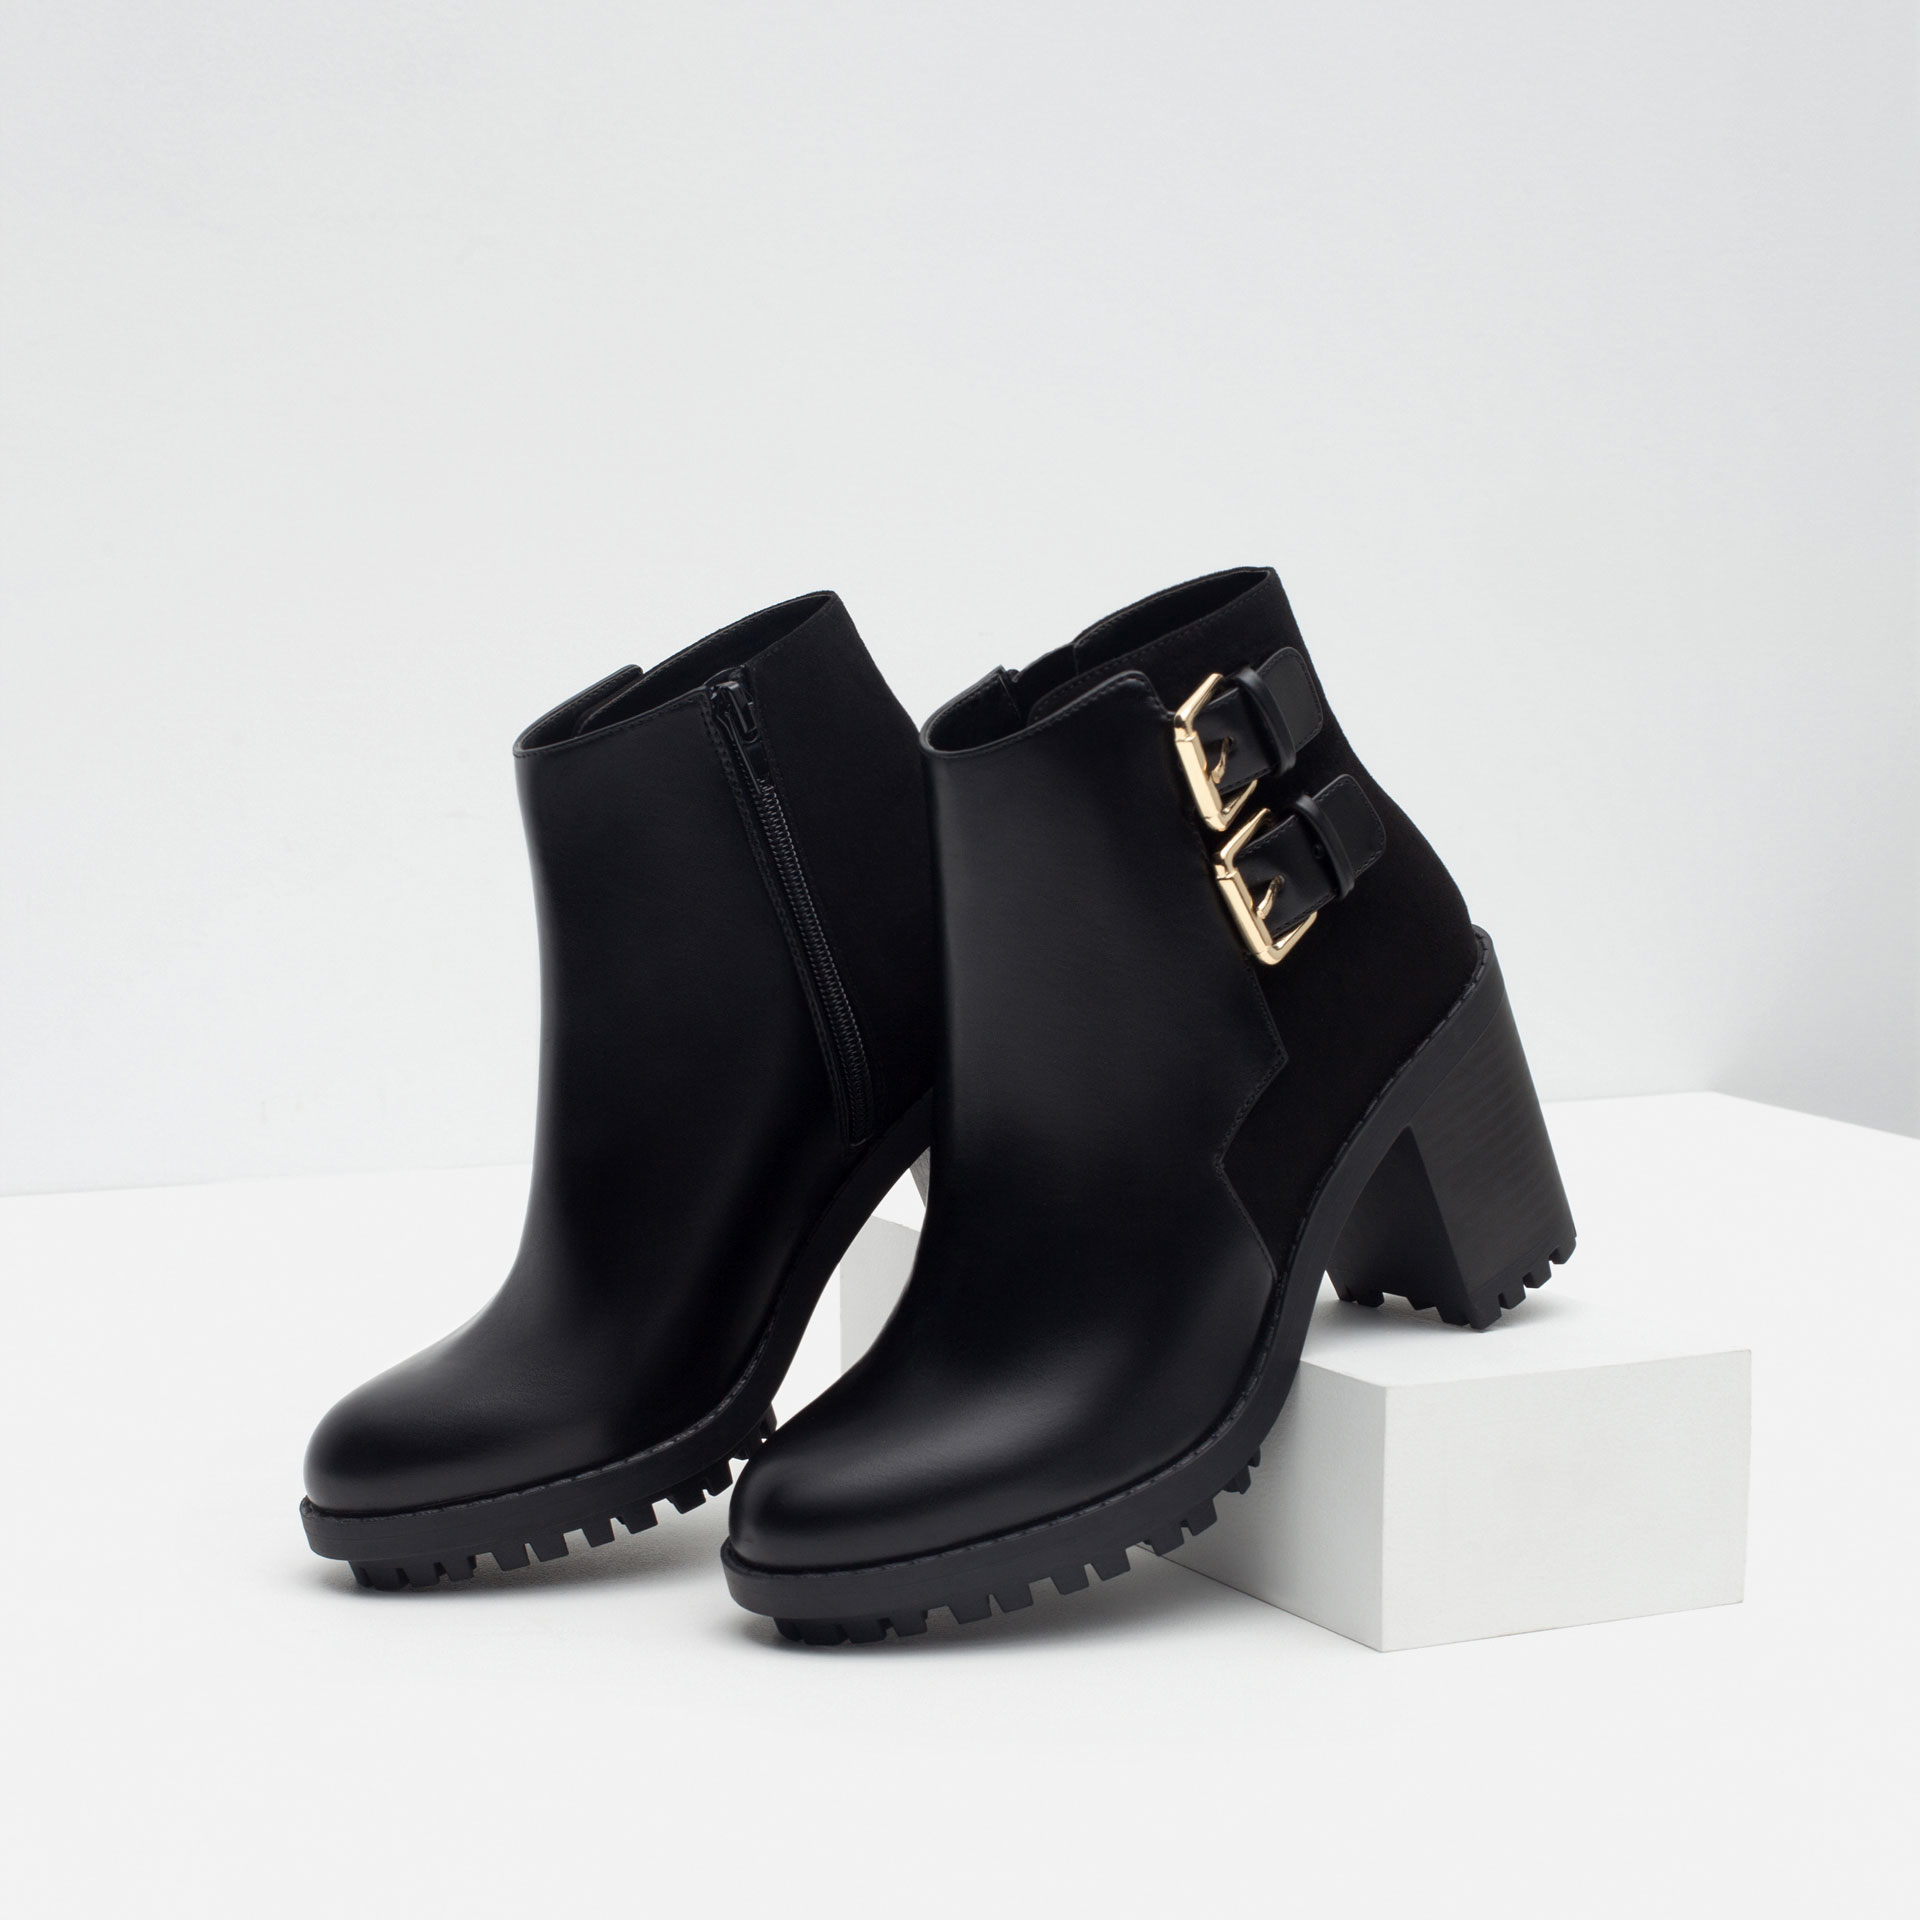 Zara Ankle Boots With Buckles in Black | Lyst